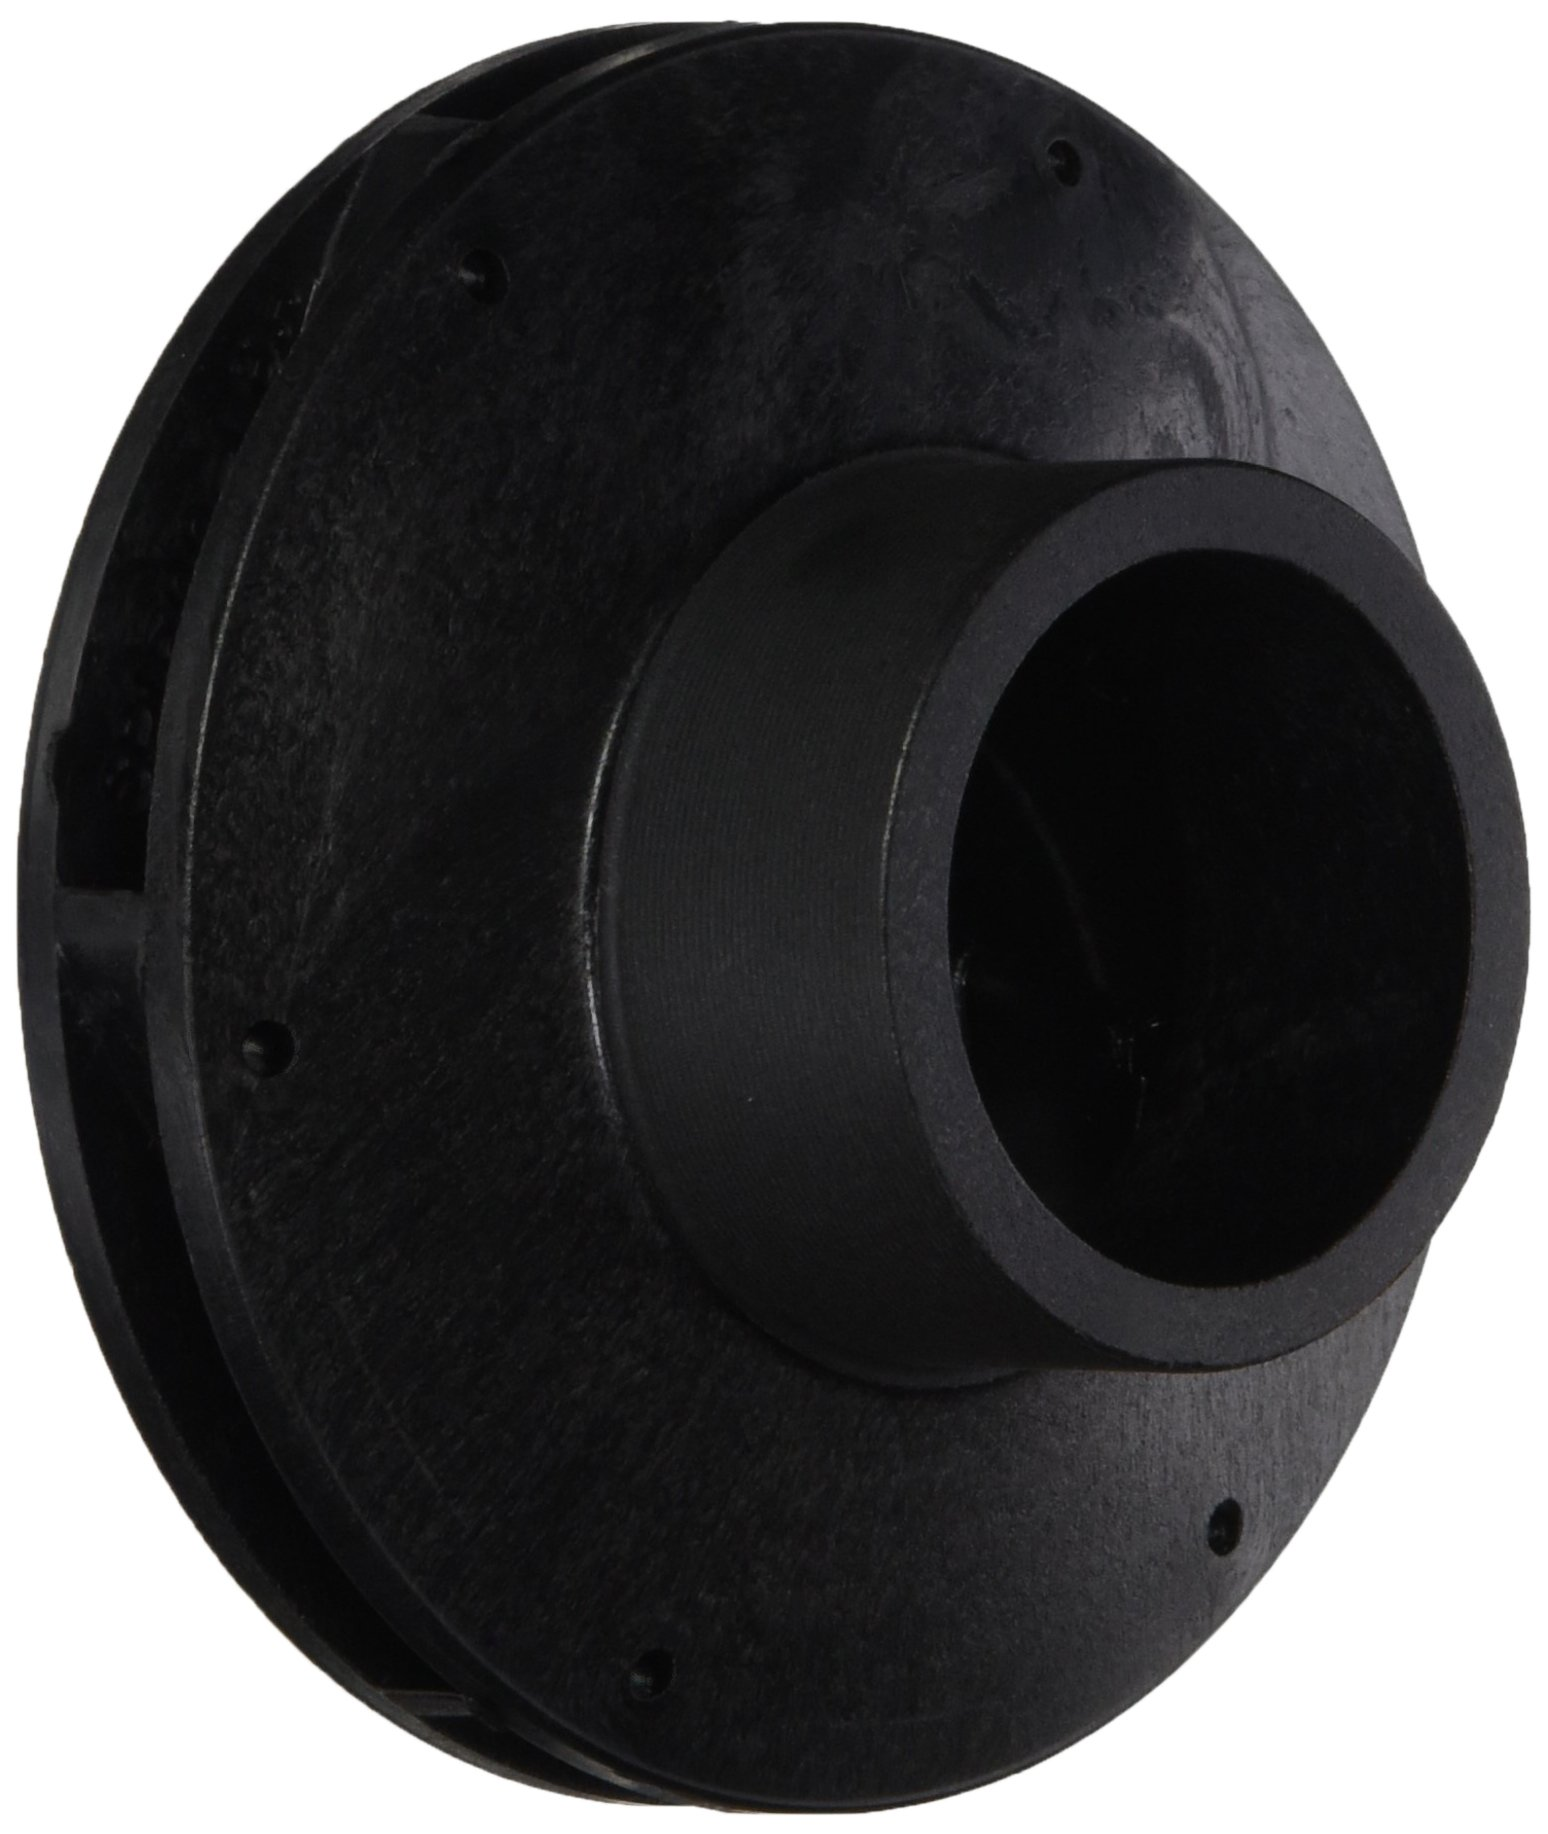 Hayward SPX1500LH High Performance Impeller Replacement for Hayward Abg and Power-Flo LX Pump, 1-HP